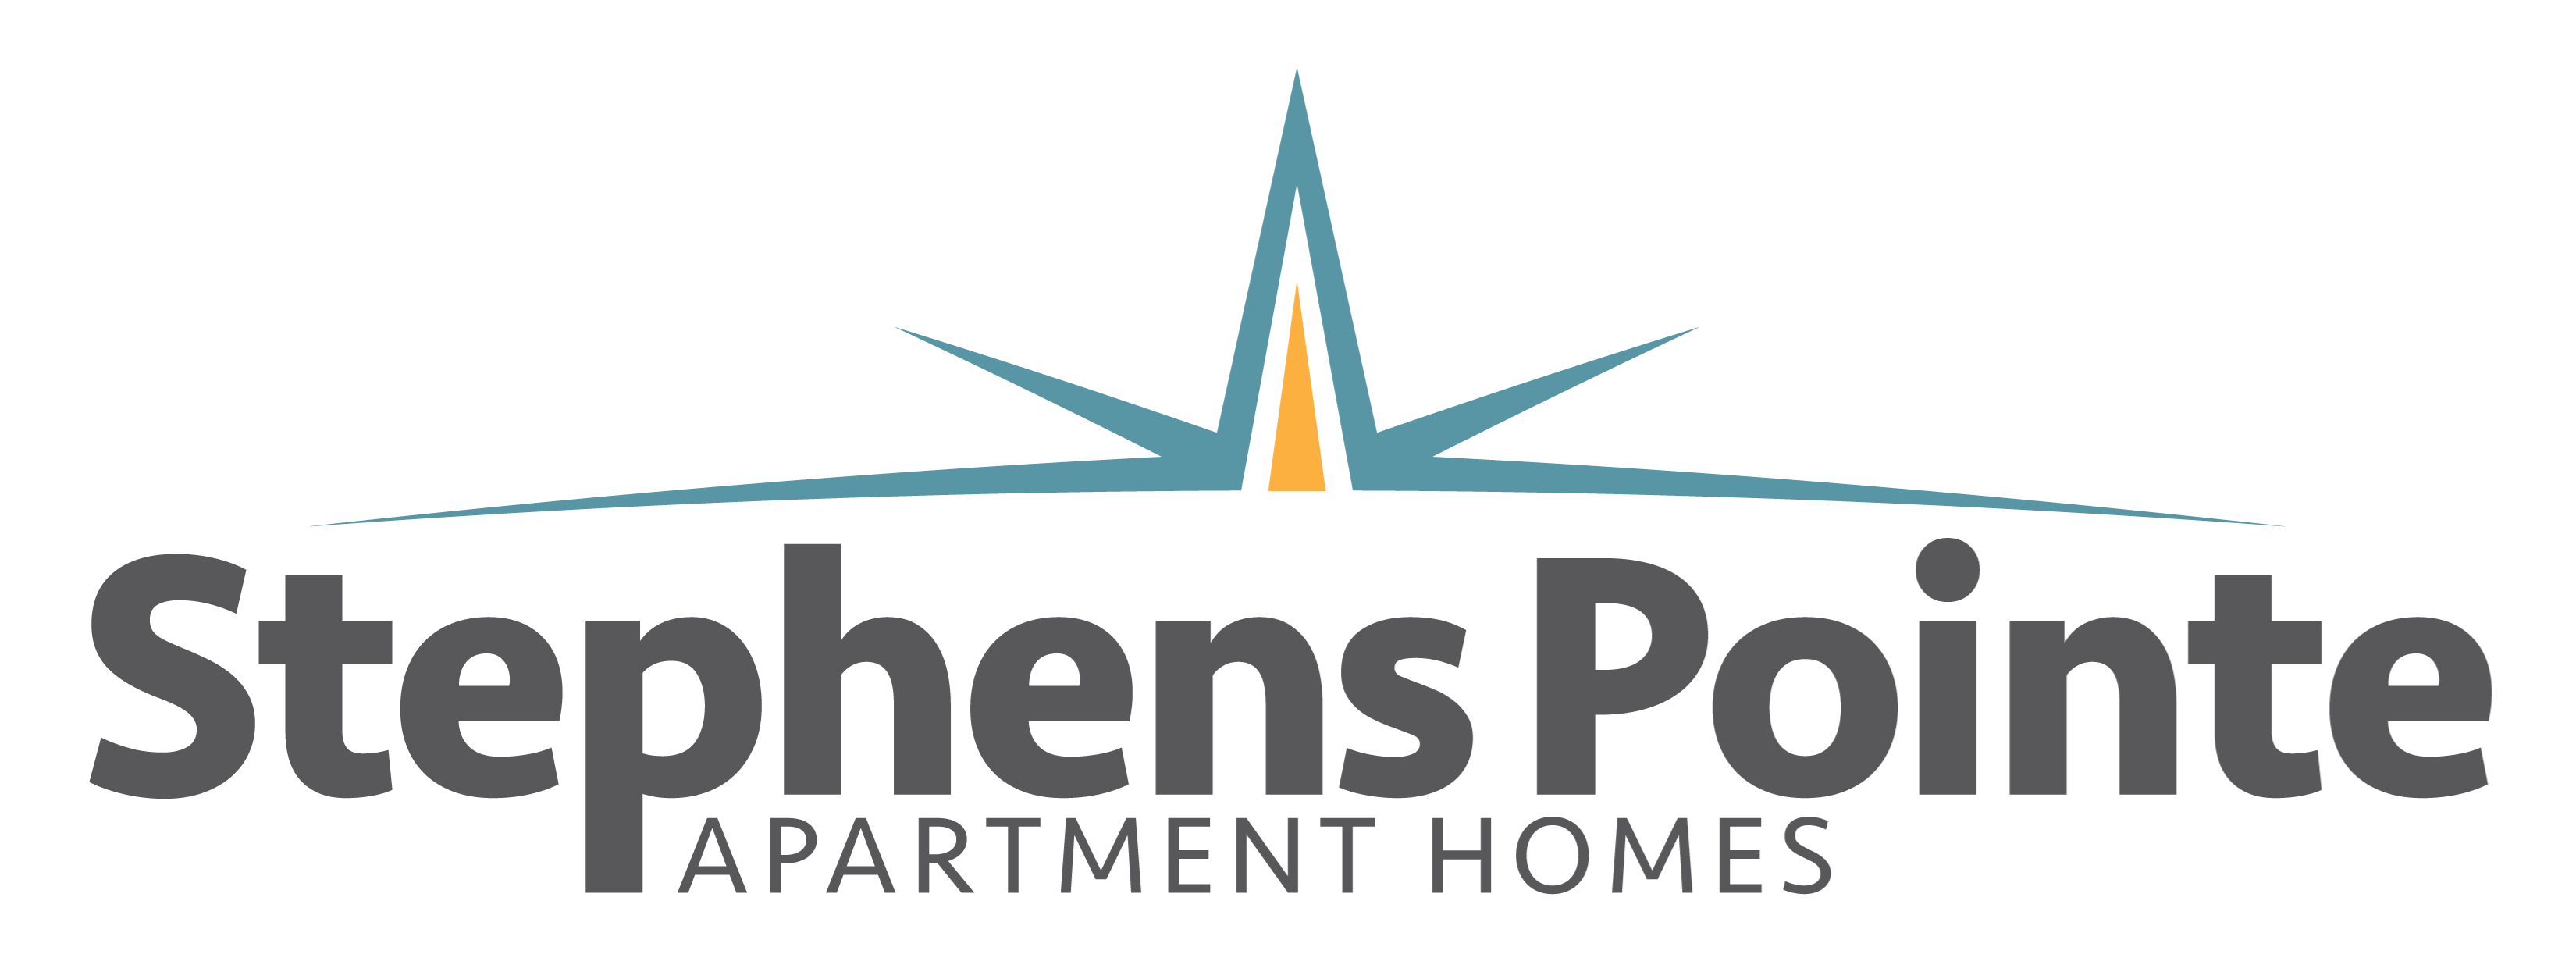 Cape Fear Property Logo 6